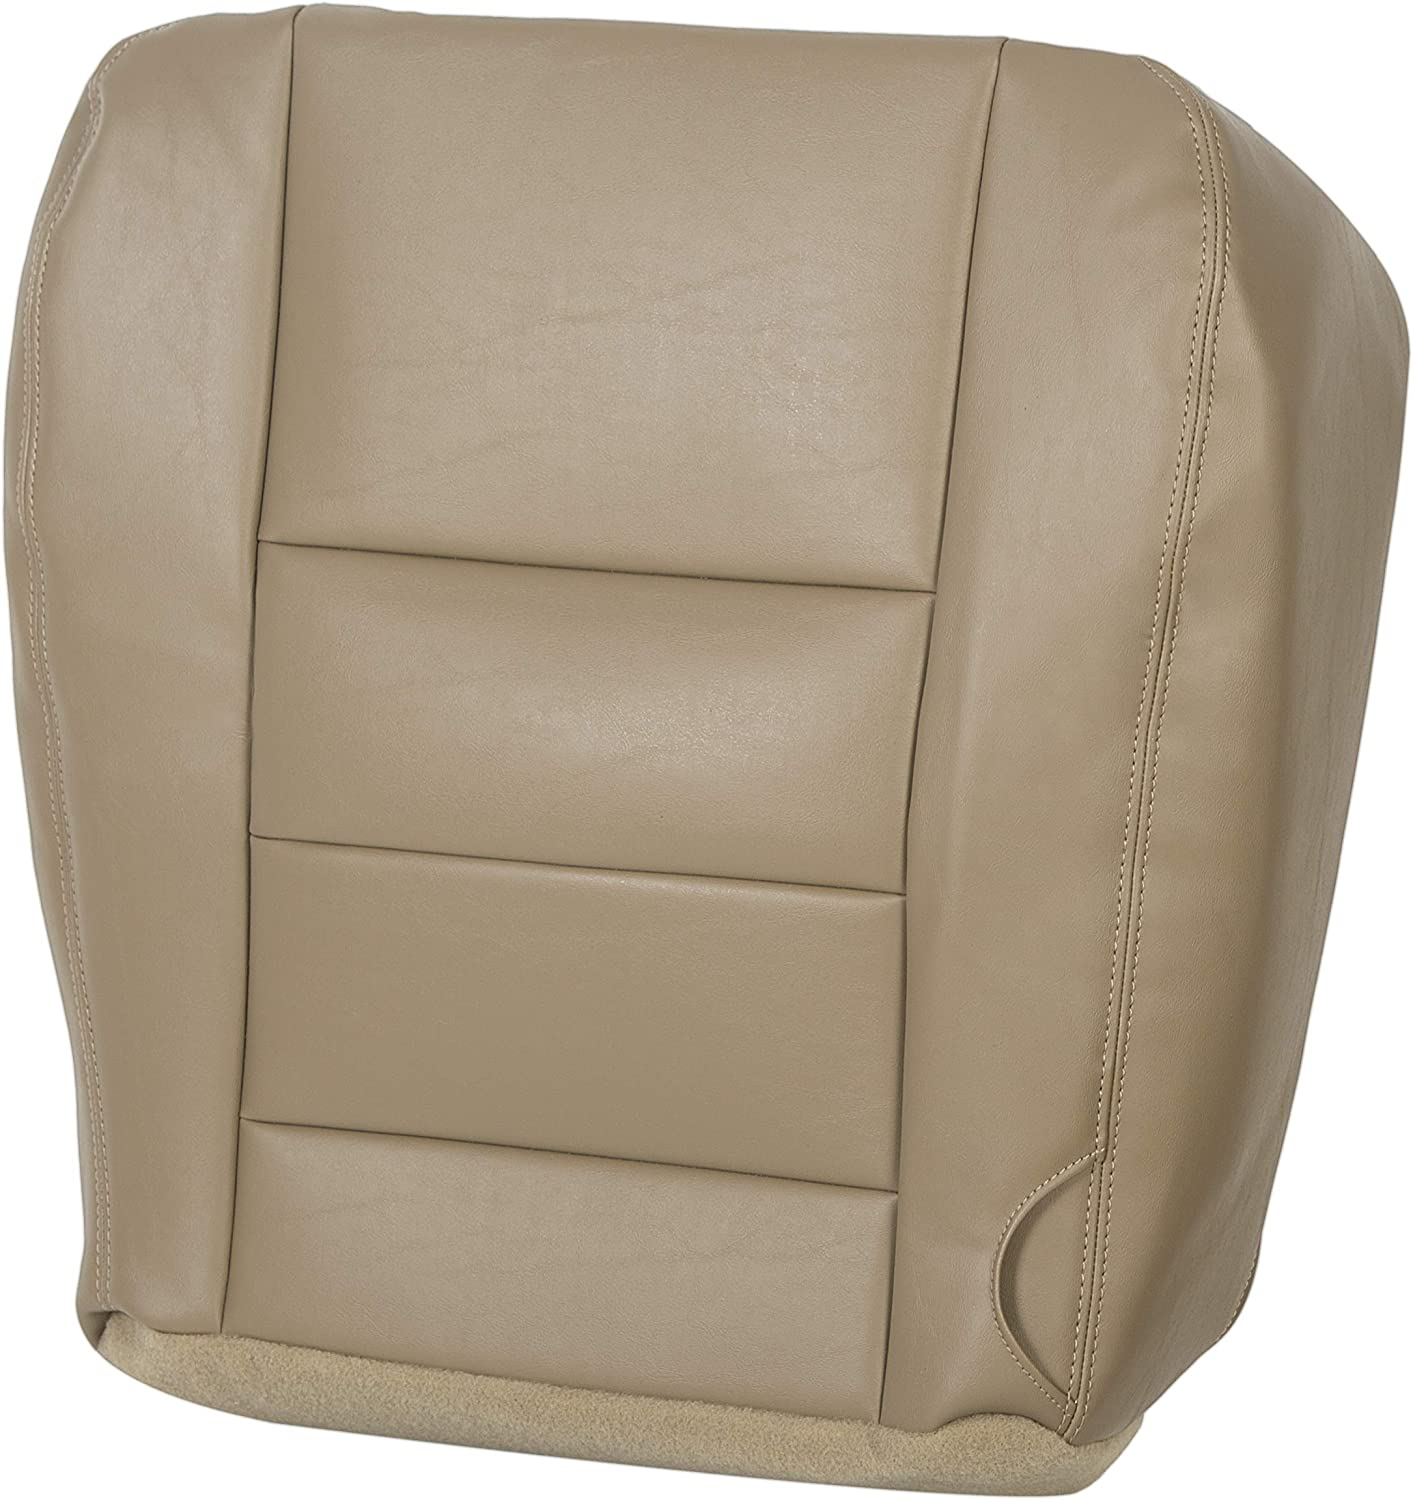 Genuine Free Shipping ECOTRIC Driver Bottom Seat Cover Compatible Tan Vinyl Beauty products Color with